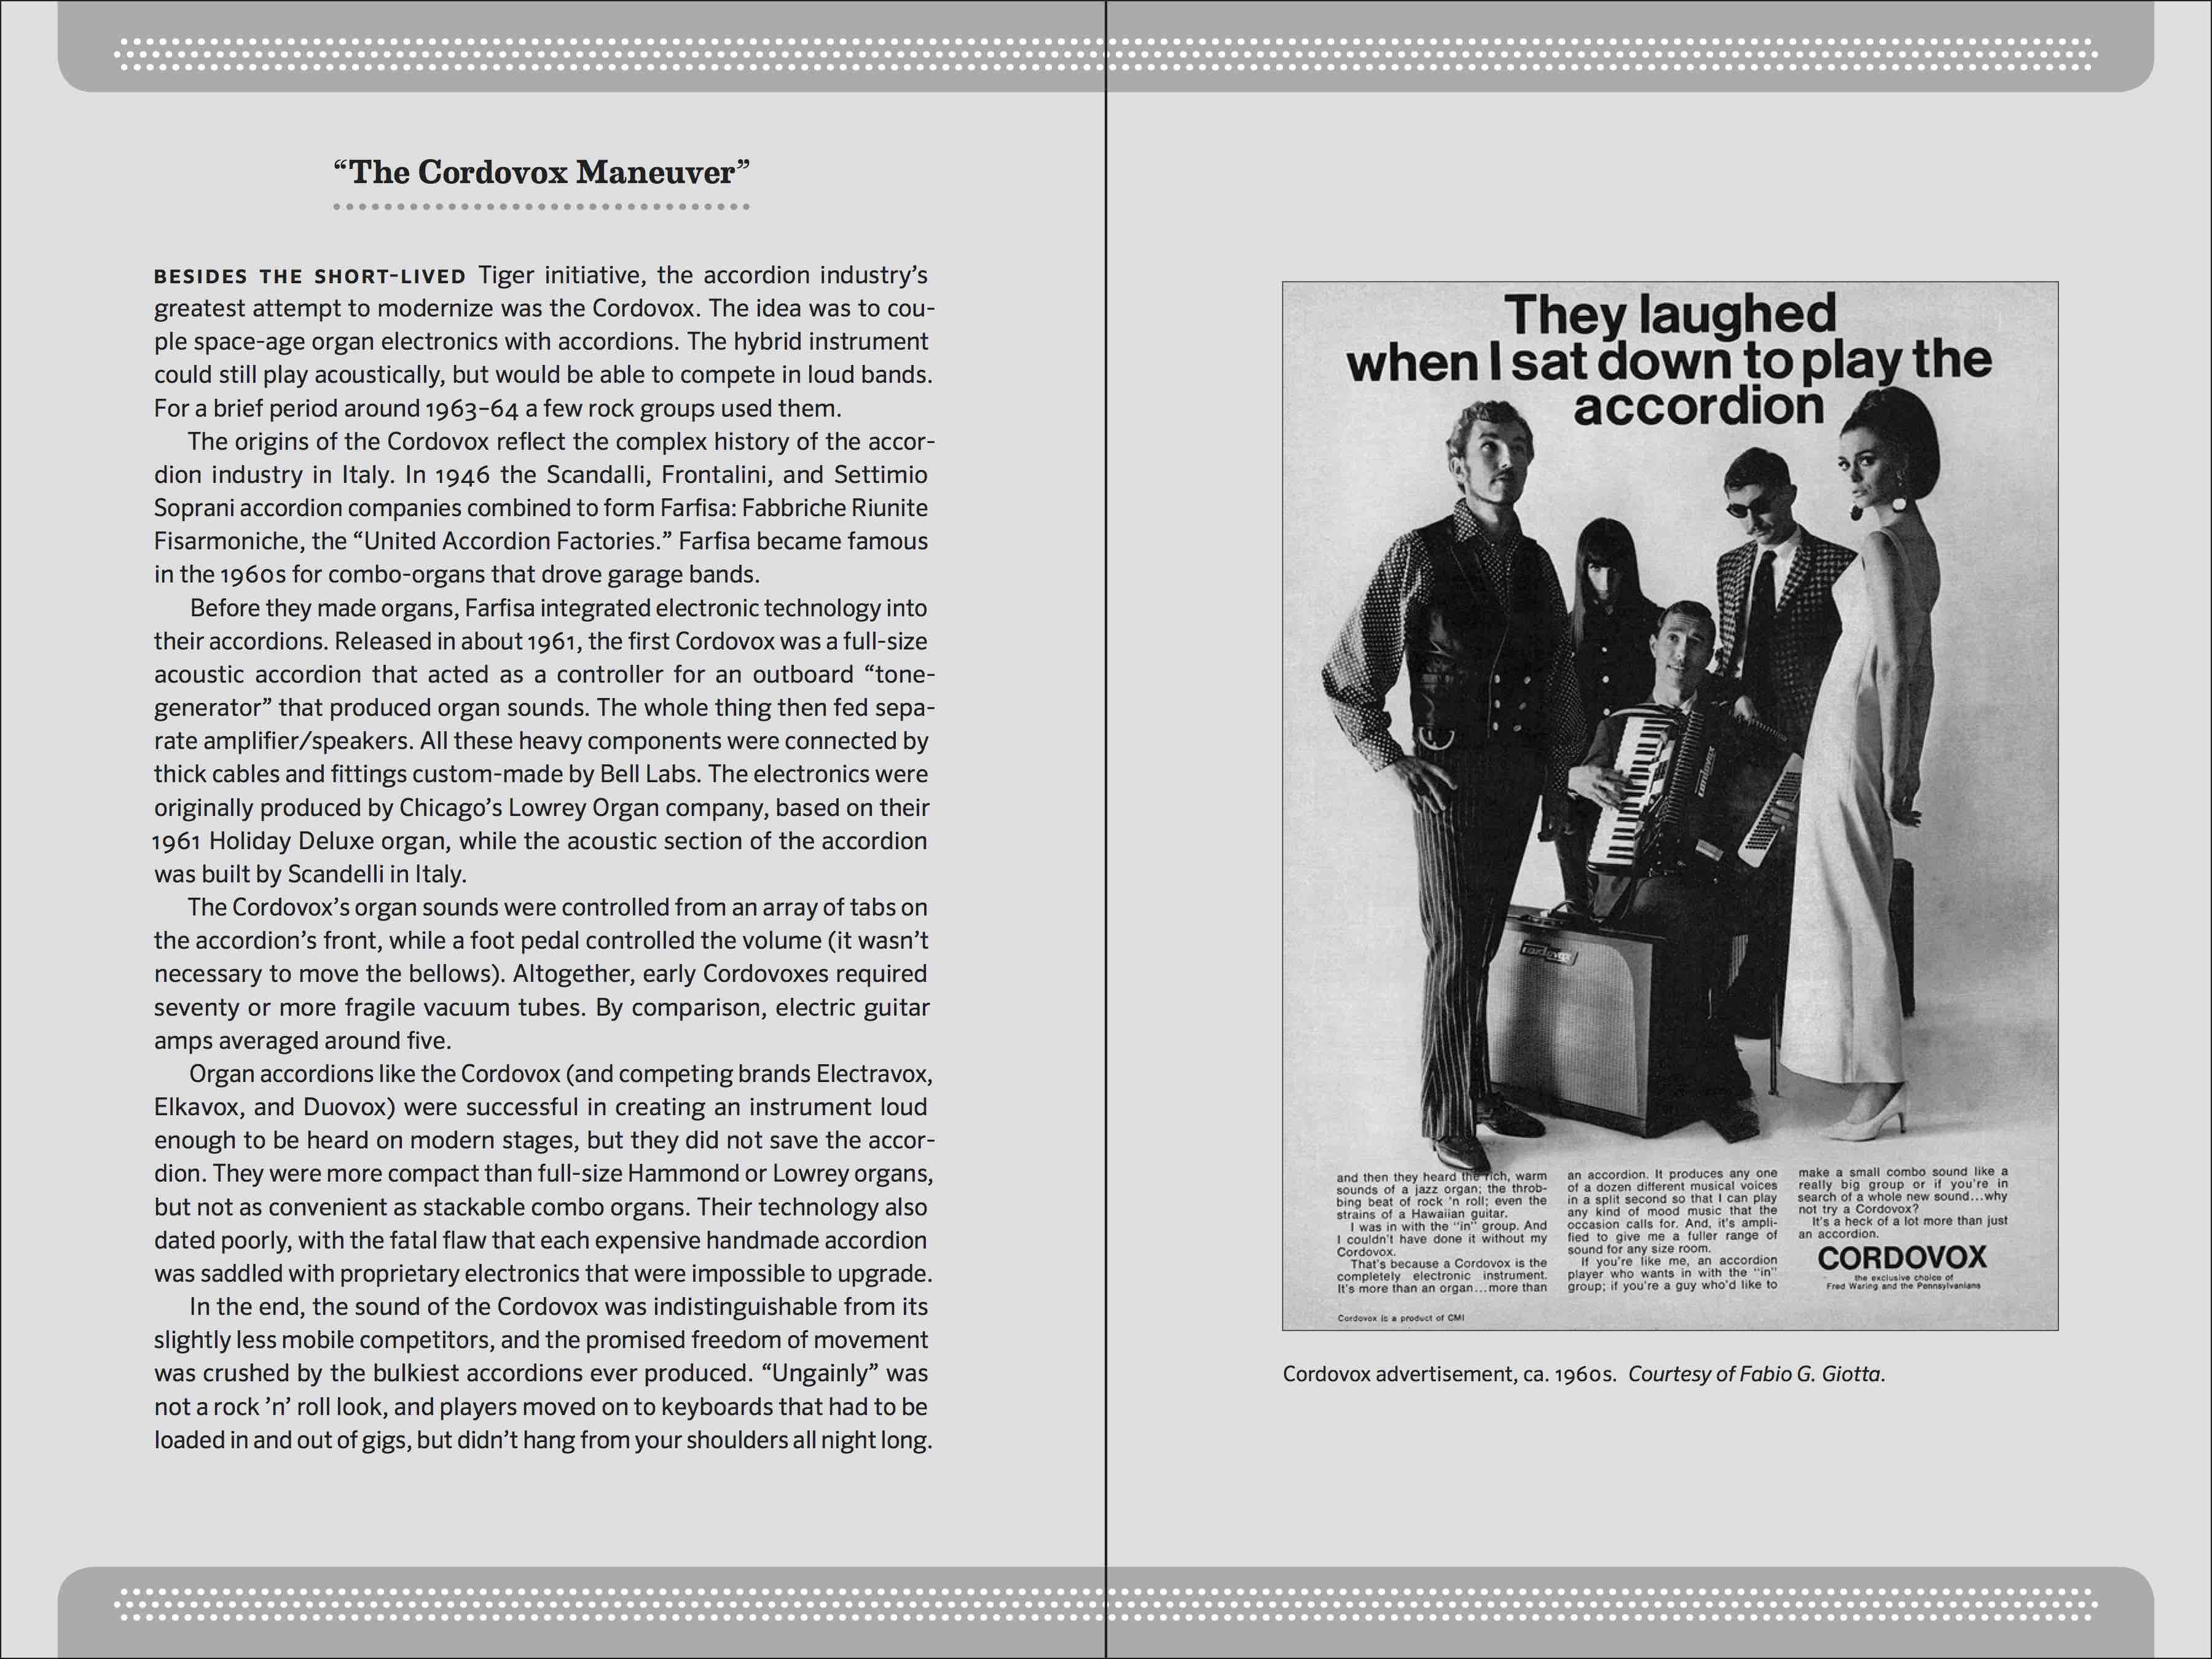 "Two page spread from Accordion Revolution. Left side text: ""The Cordovox Maneuver"" about organ accordions. Right page: The vintage Advertisement photo-image from book: of clean-cut looking dude playing Cordovox Electronic Organ Accordion, surrounded by 1960's hipsters with trendy clothes. Text: ""They laughed when I sat down to play the accordion."" Sidebar pages have a gray background to separate them from the main text, and have a darker border on top and bottom with rounded corners and three rows of white dots that suggest the keyboard of a really long button accordion."